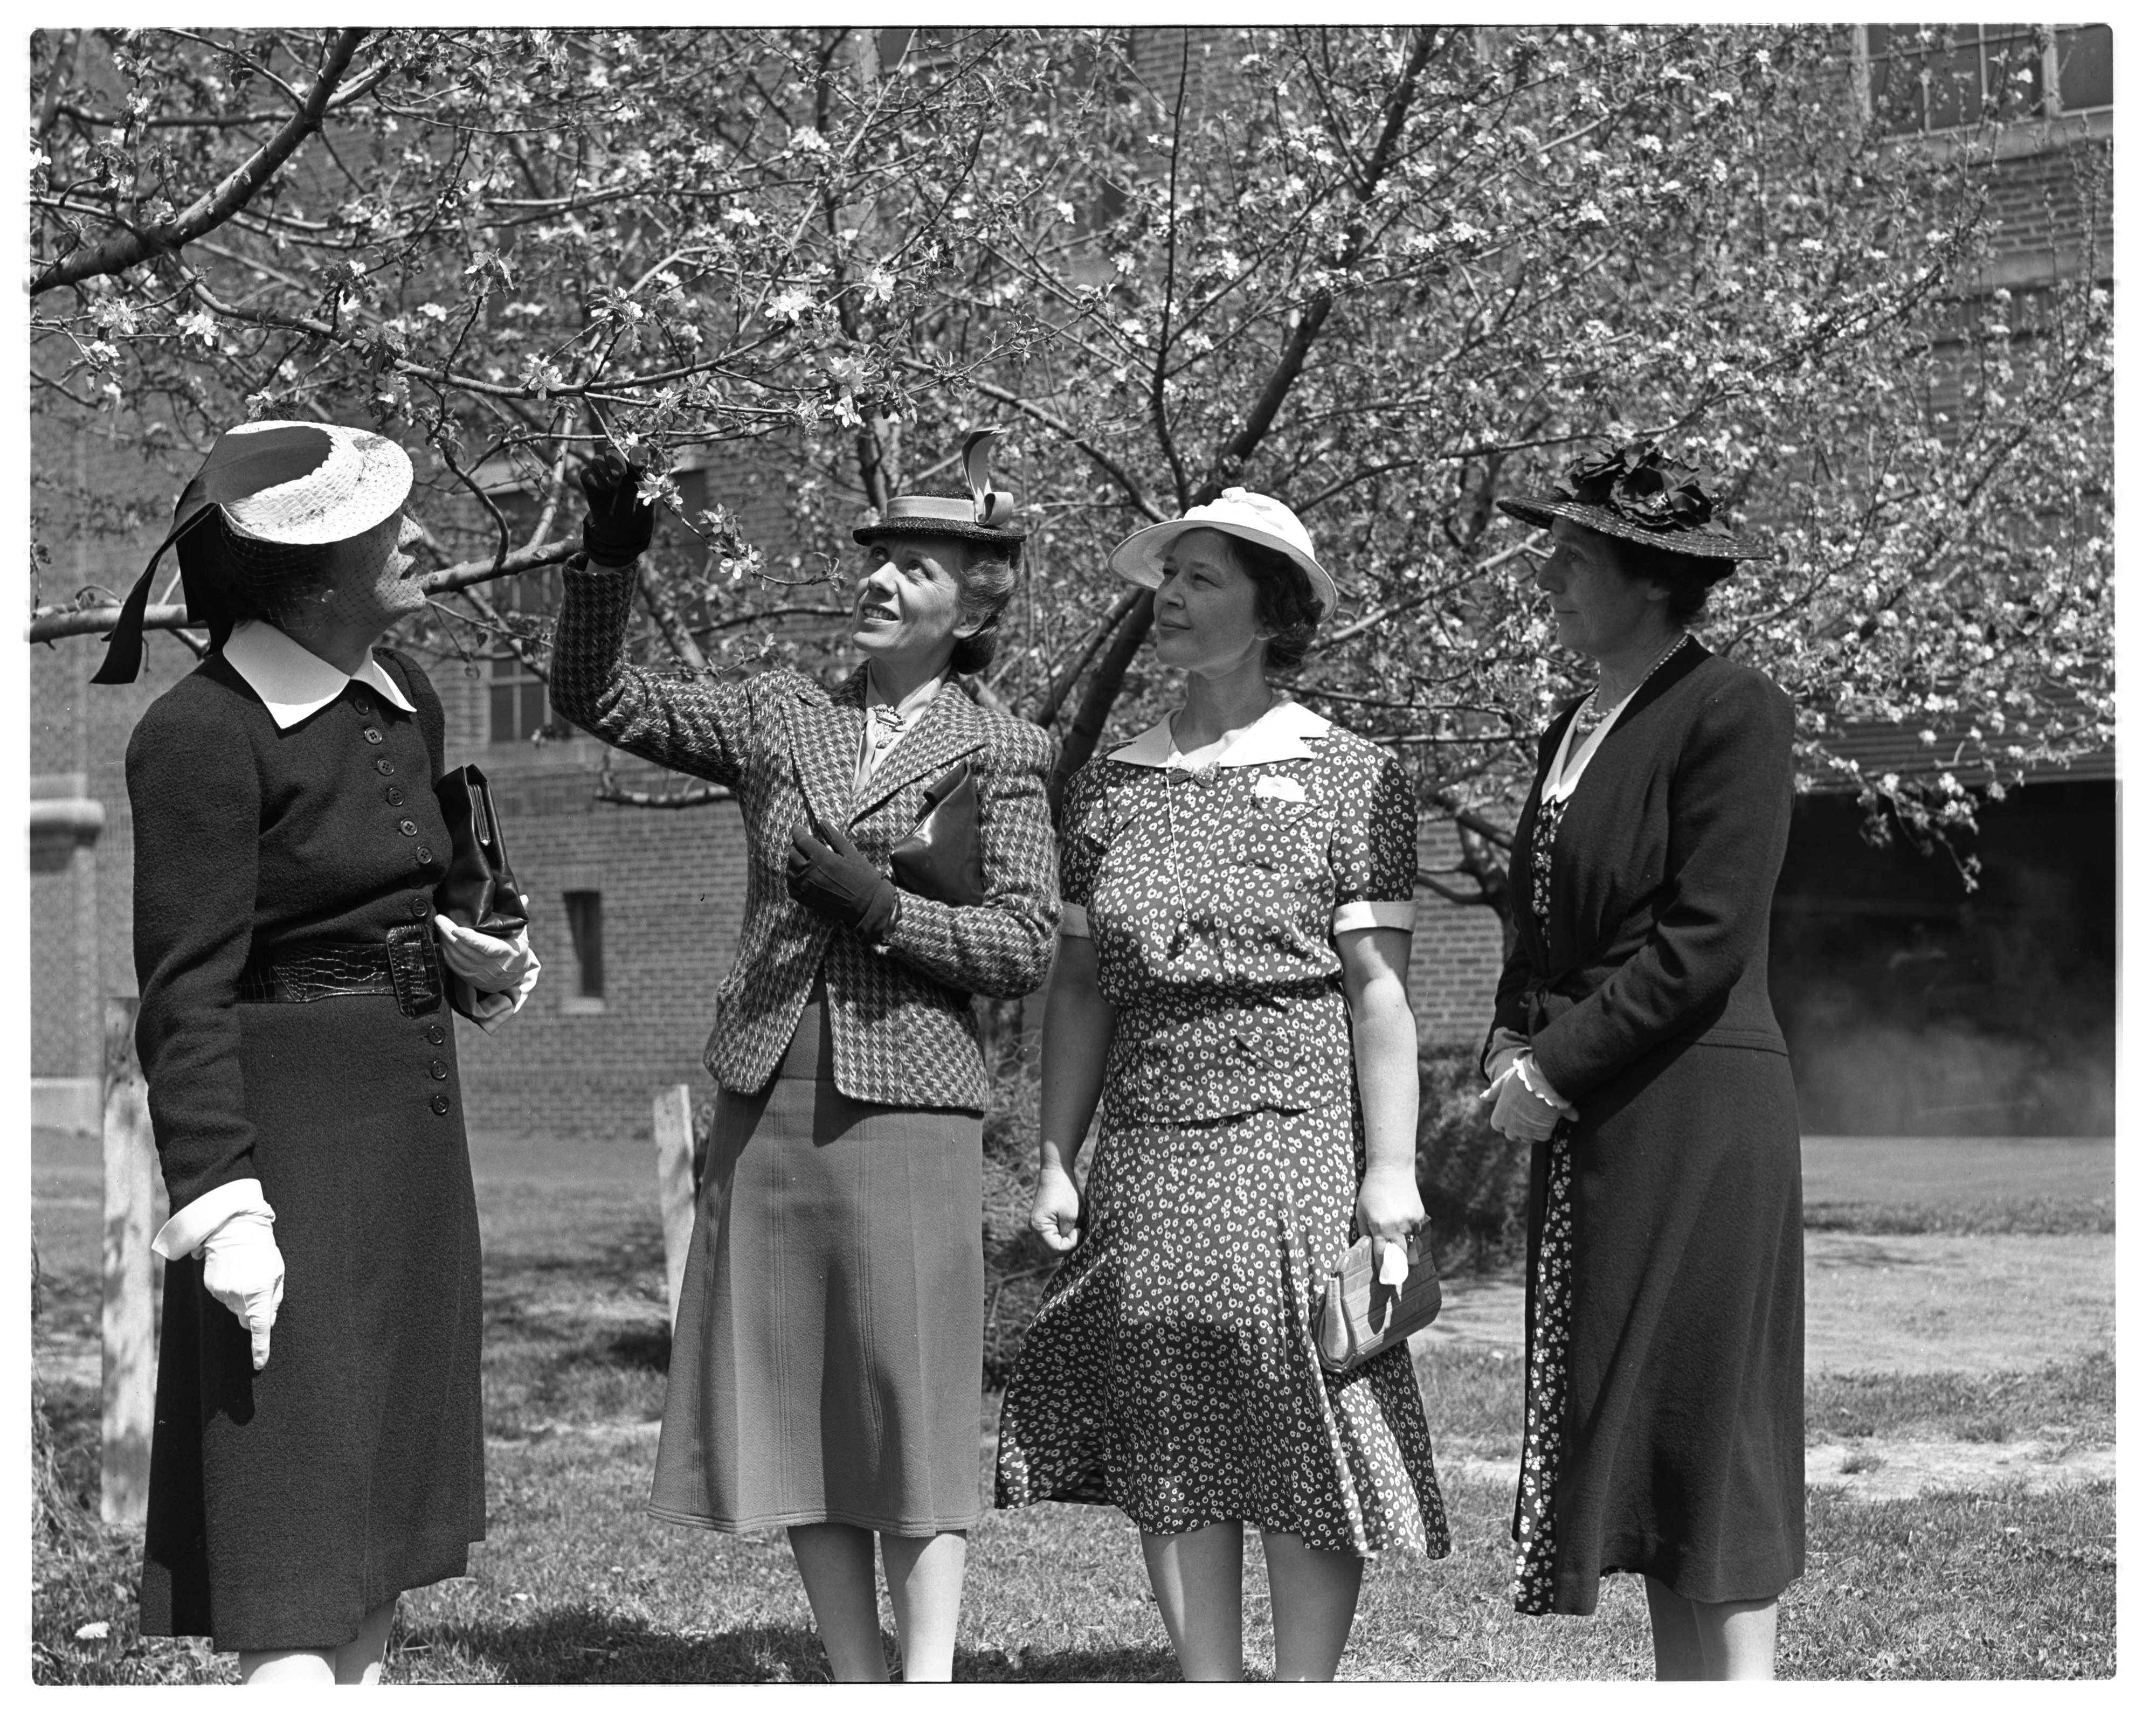 Ann Arbor Garden Club Members with Apple Blossoms image